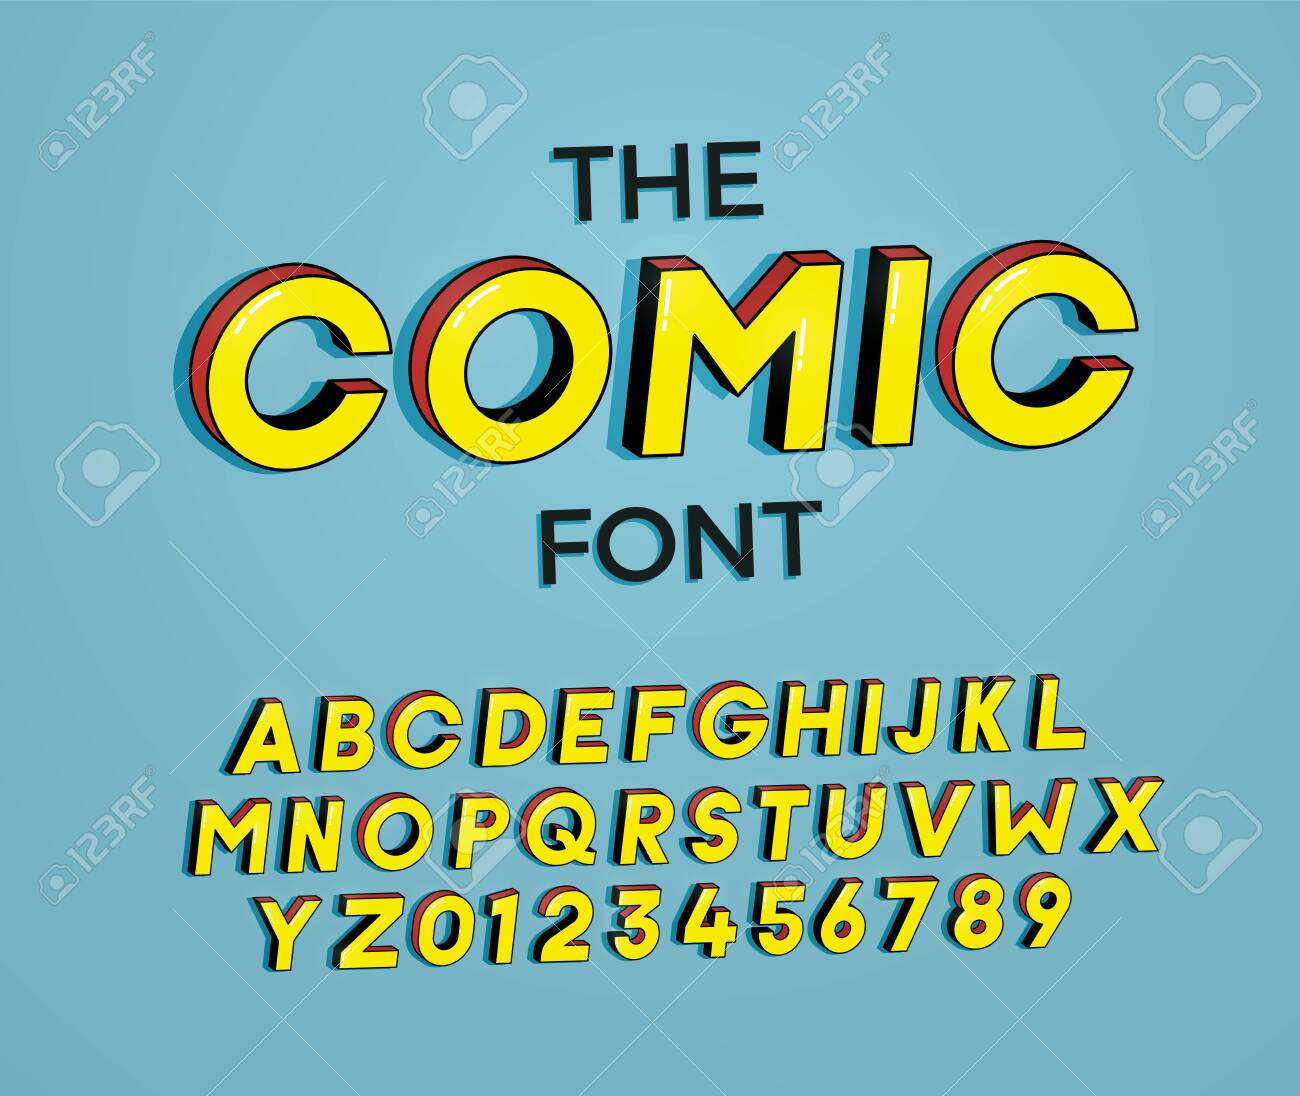 The Comic font. Vector illustration 3d design. Letters and numbers design with super heroes comic book effect - 126246420